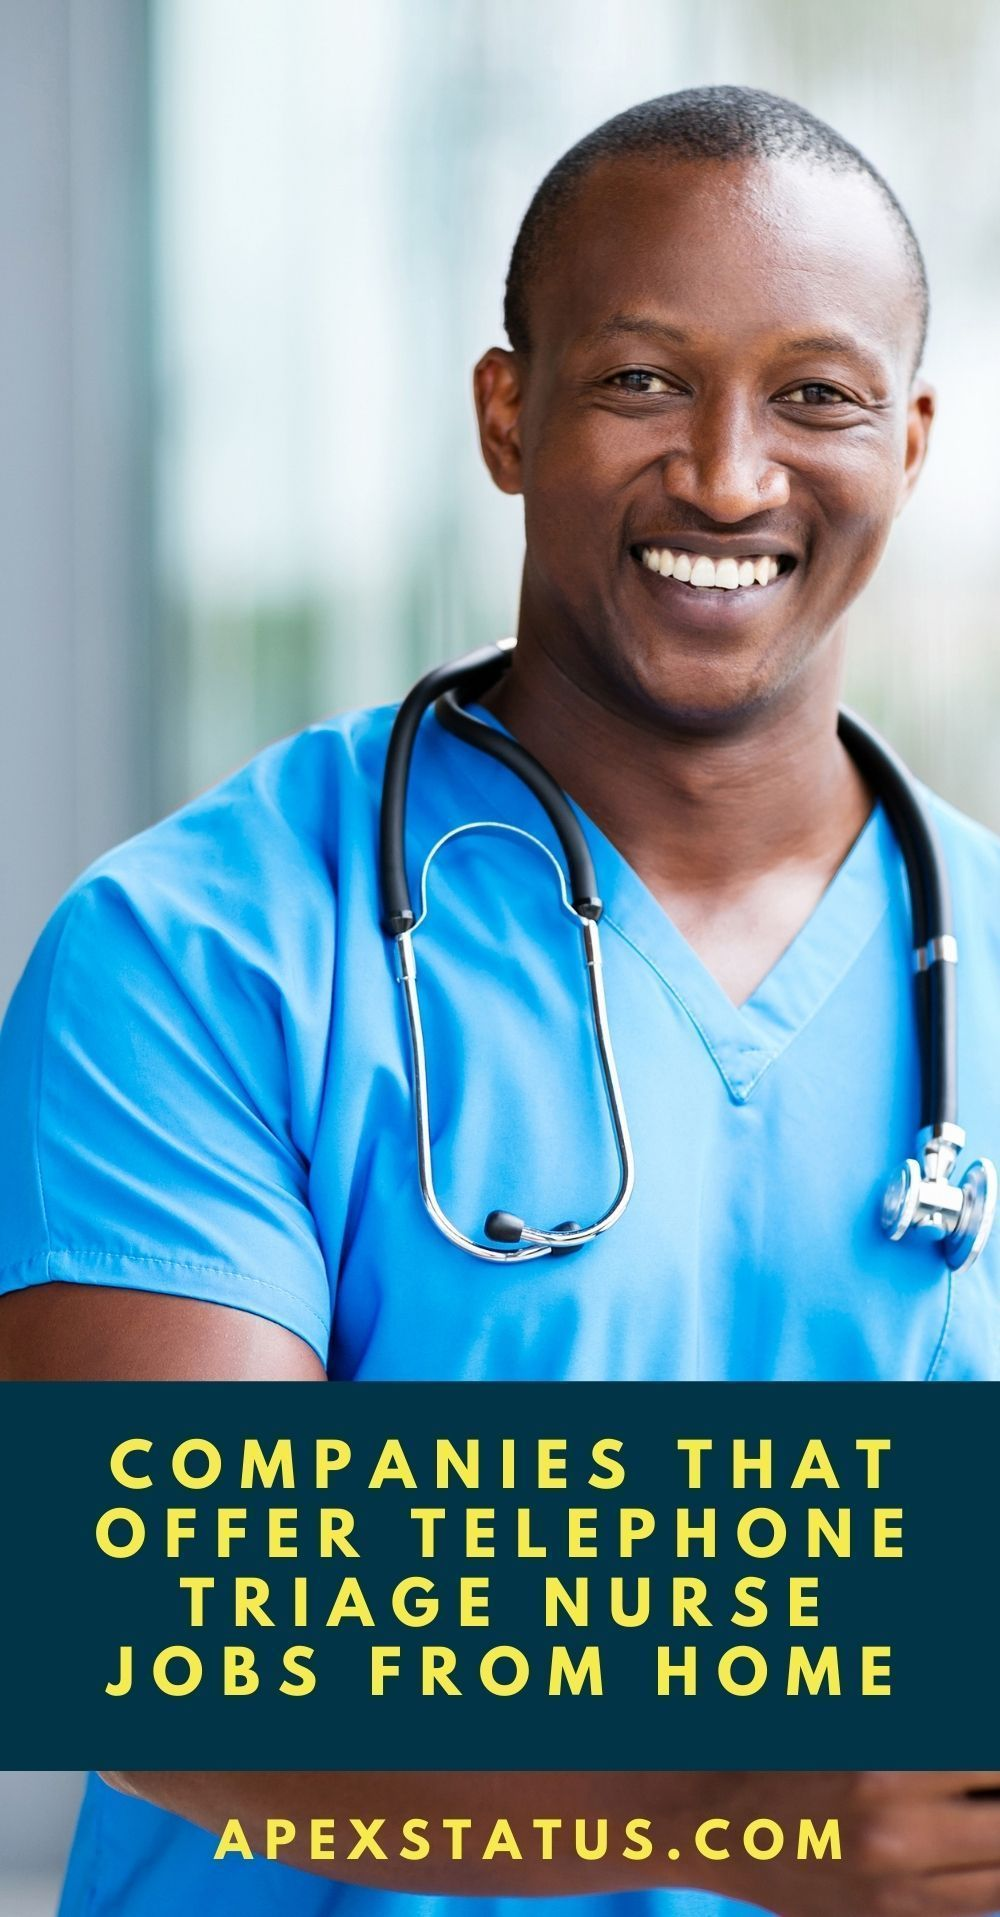 5 Little Known Companies that Offer Telephone Triage Nurse